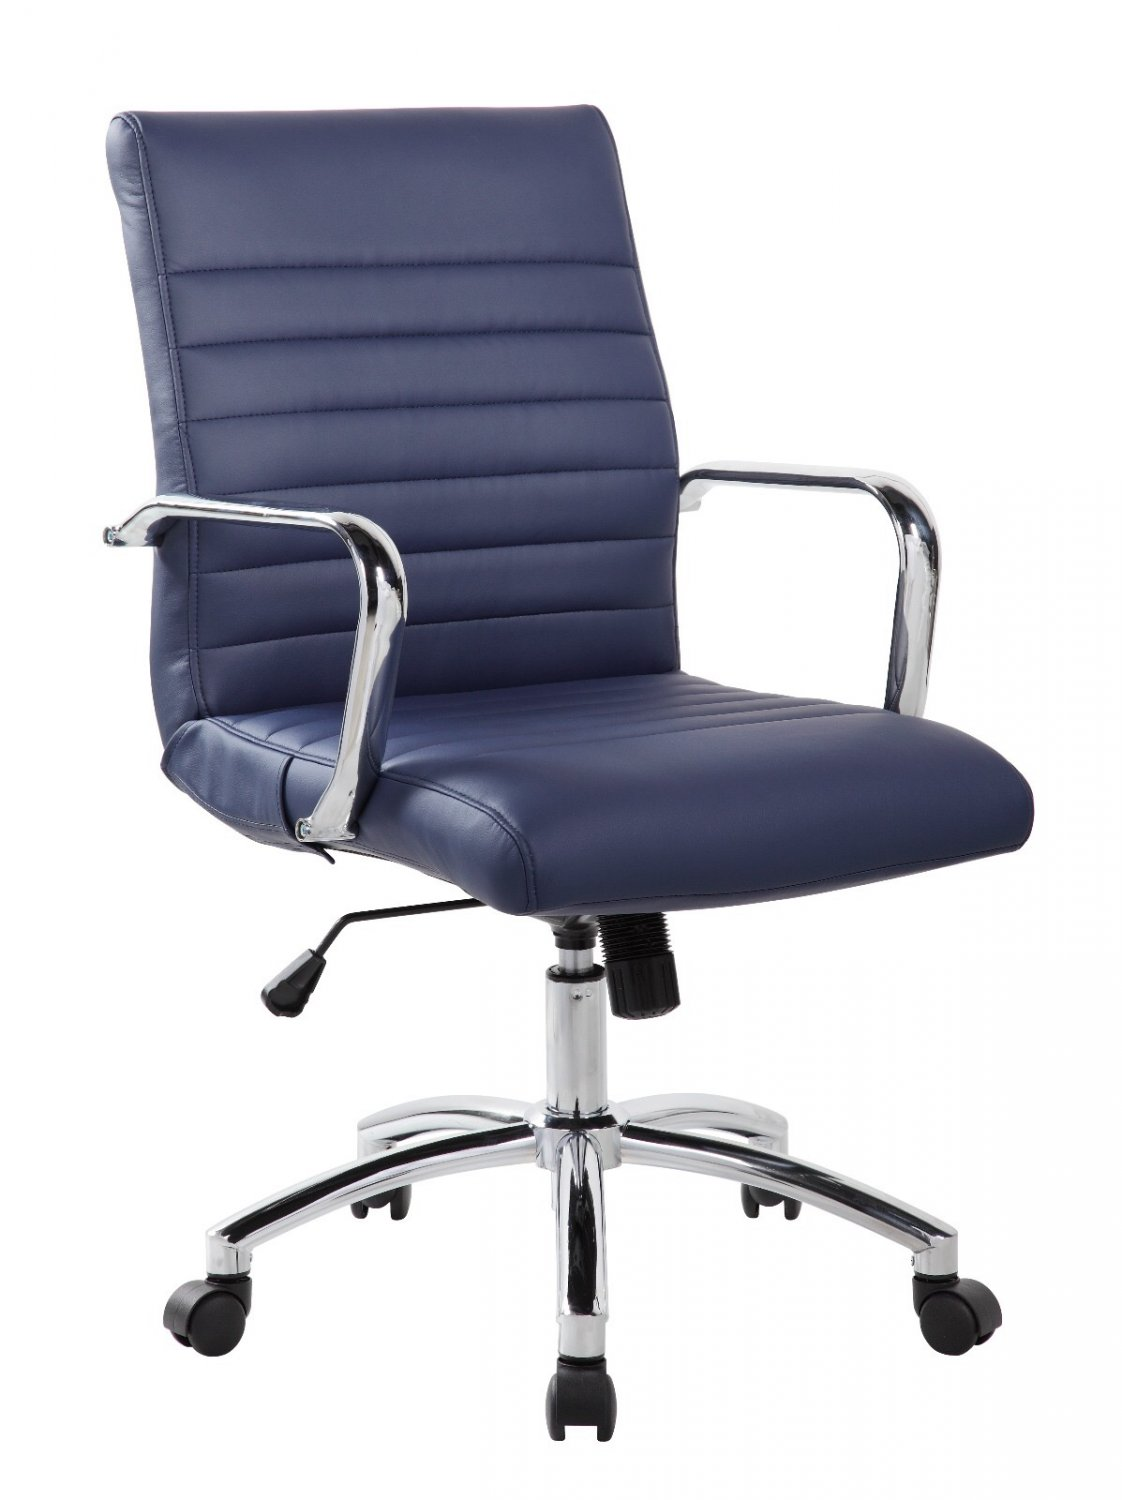 Realspace Chairs Realbiz Mid Back Ribbed Faux Leather Office Chair